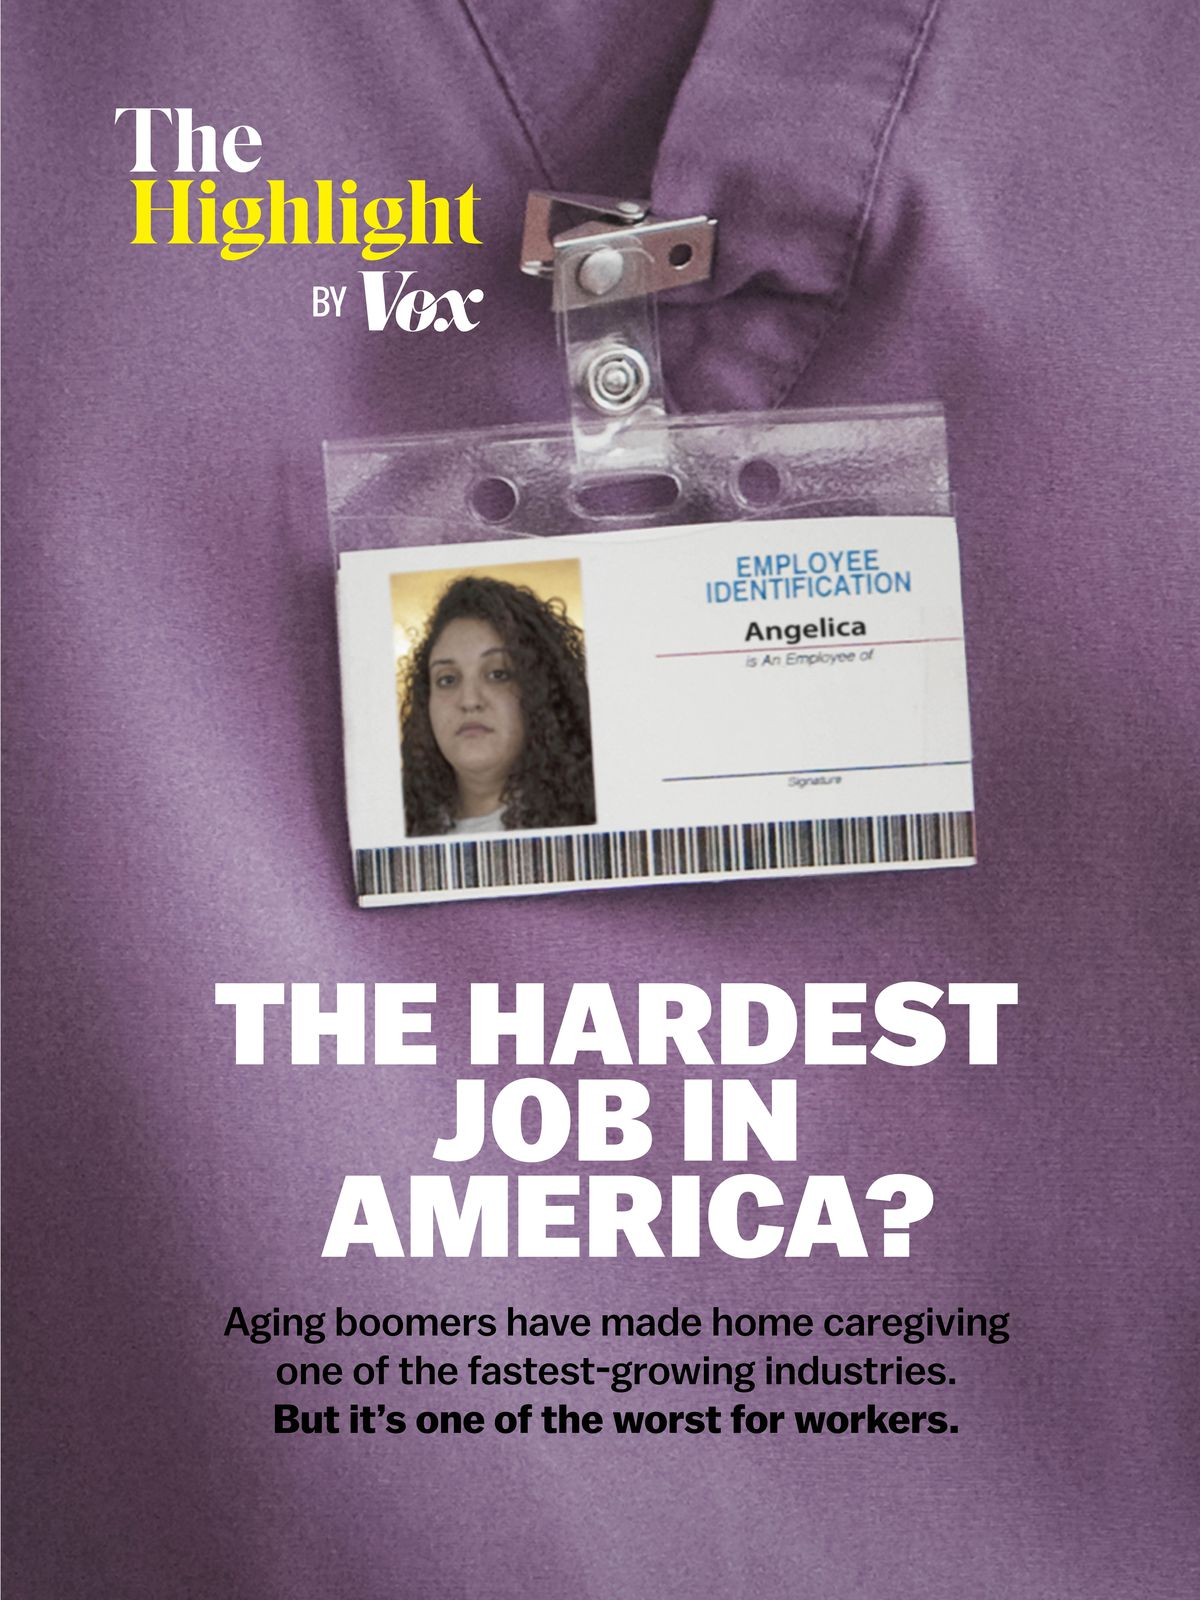 """Cover for The Highlight by Vox issue number 5, with an image of an ID badge and text that says, """"The hardest job in America? Aging boomers have made home caregiving one of the fastest-growing industries. But it's one of the worst for workers."""""""